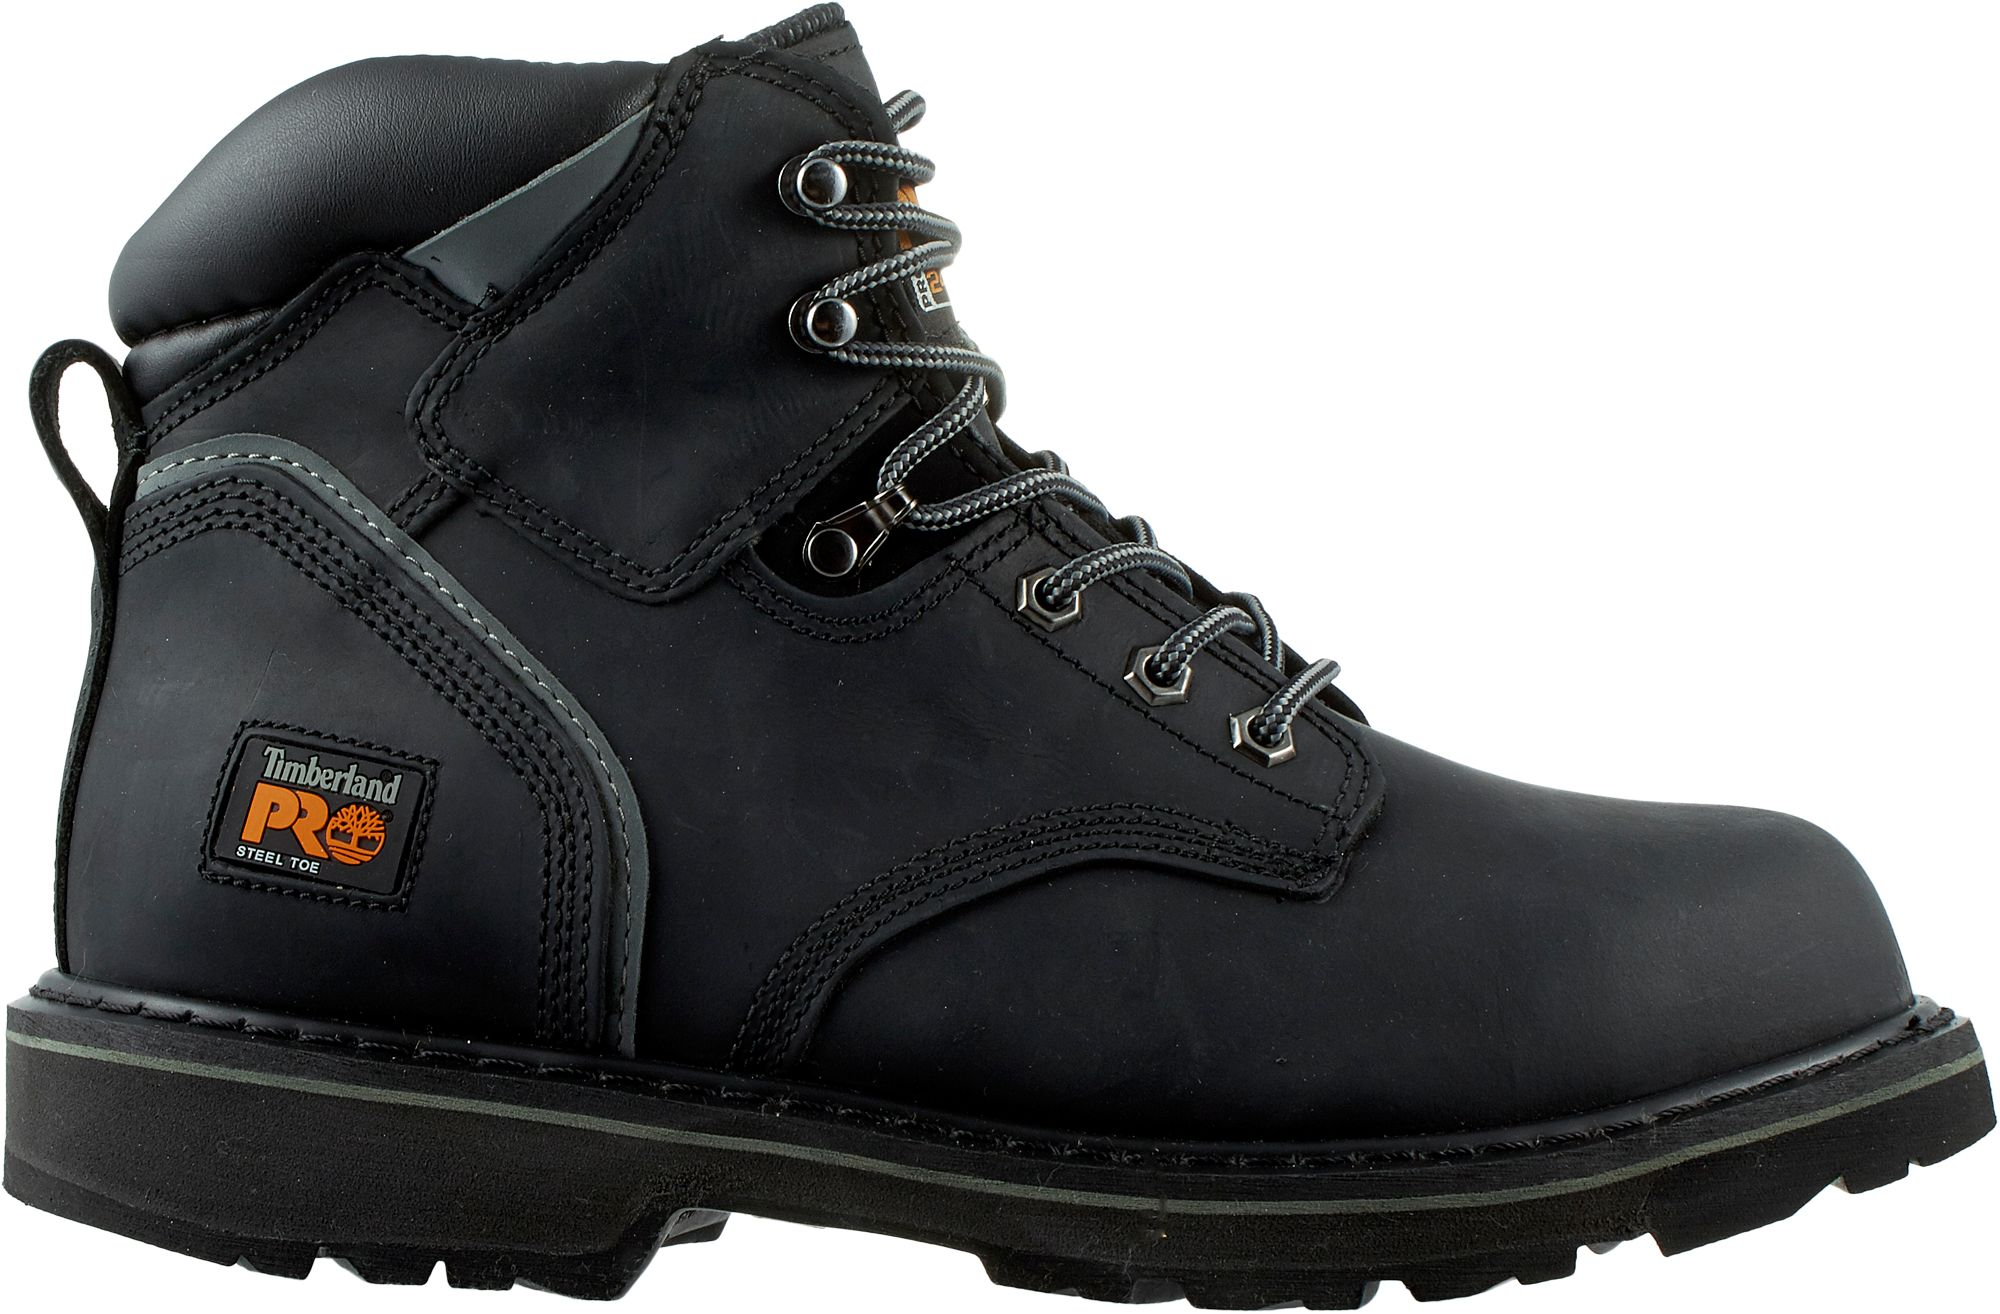 Timberland PRO Men's Jobsite Steel Toe Work Boots | DICK'S ...